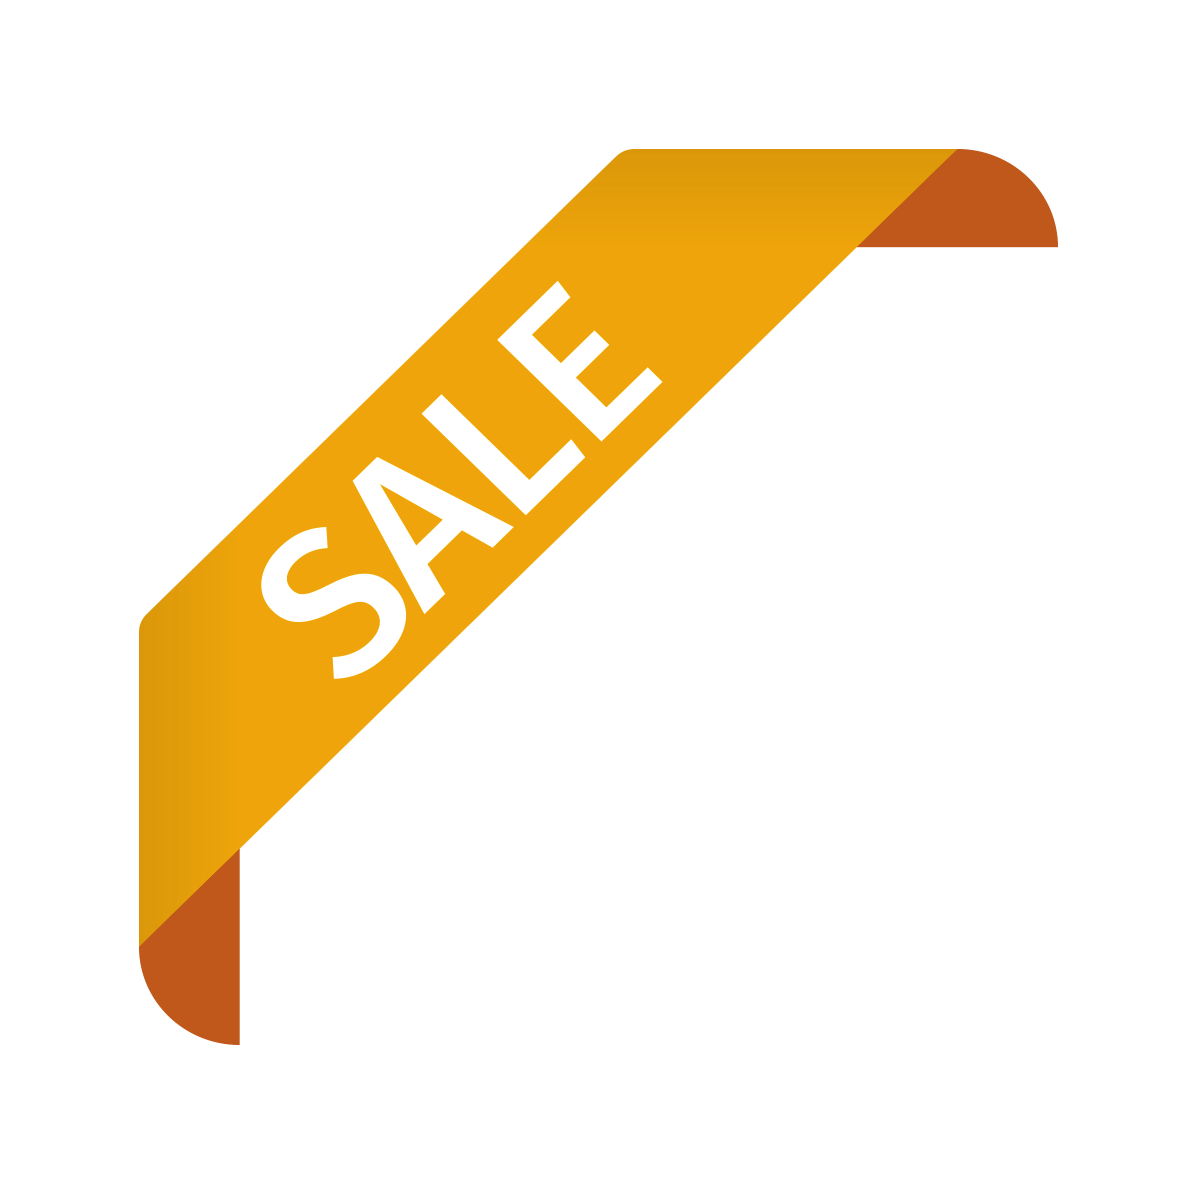 Free Download Vector Sale Ribbon Png Image High Quality Transparent Sale Label Png This Is Amazing Vector Sale Png Ribbon Image It Ribbon Png Png Images Png